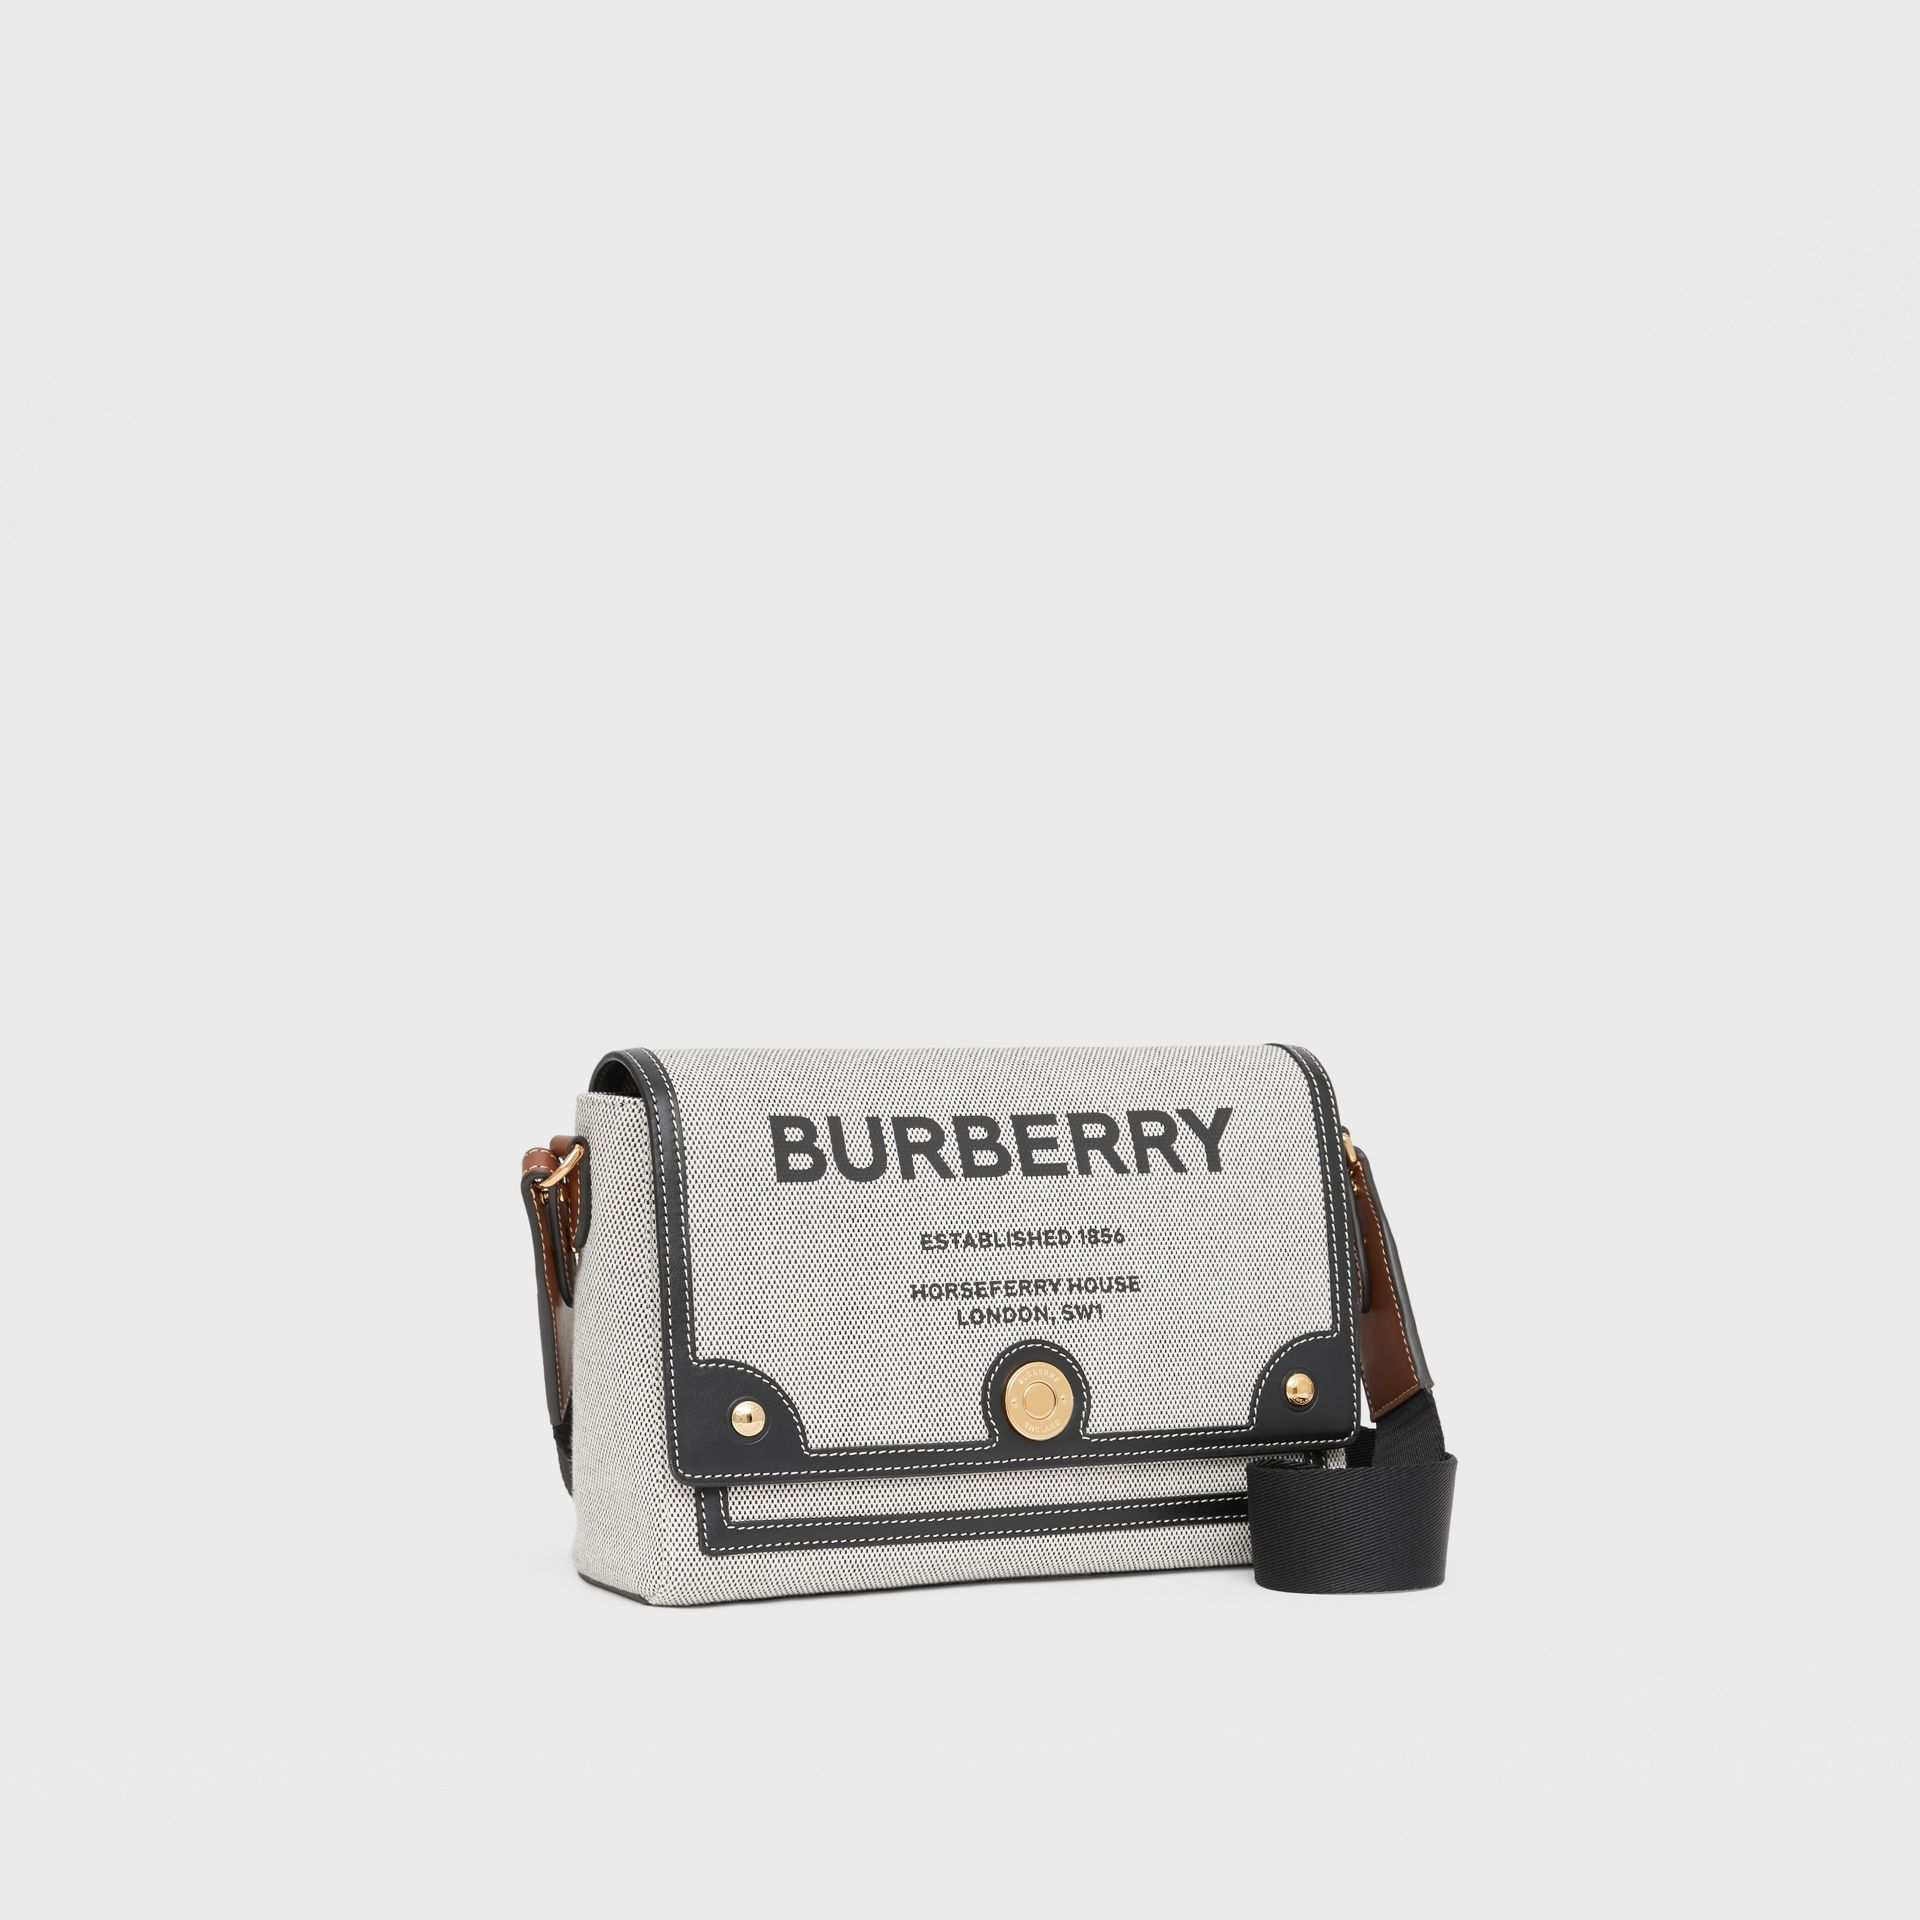 Horseferry Print Canvas Note Crossbody Bag in Black/black/tan - Women | Burberry - gallery image 4